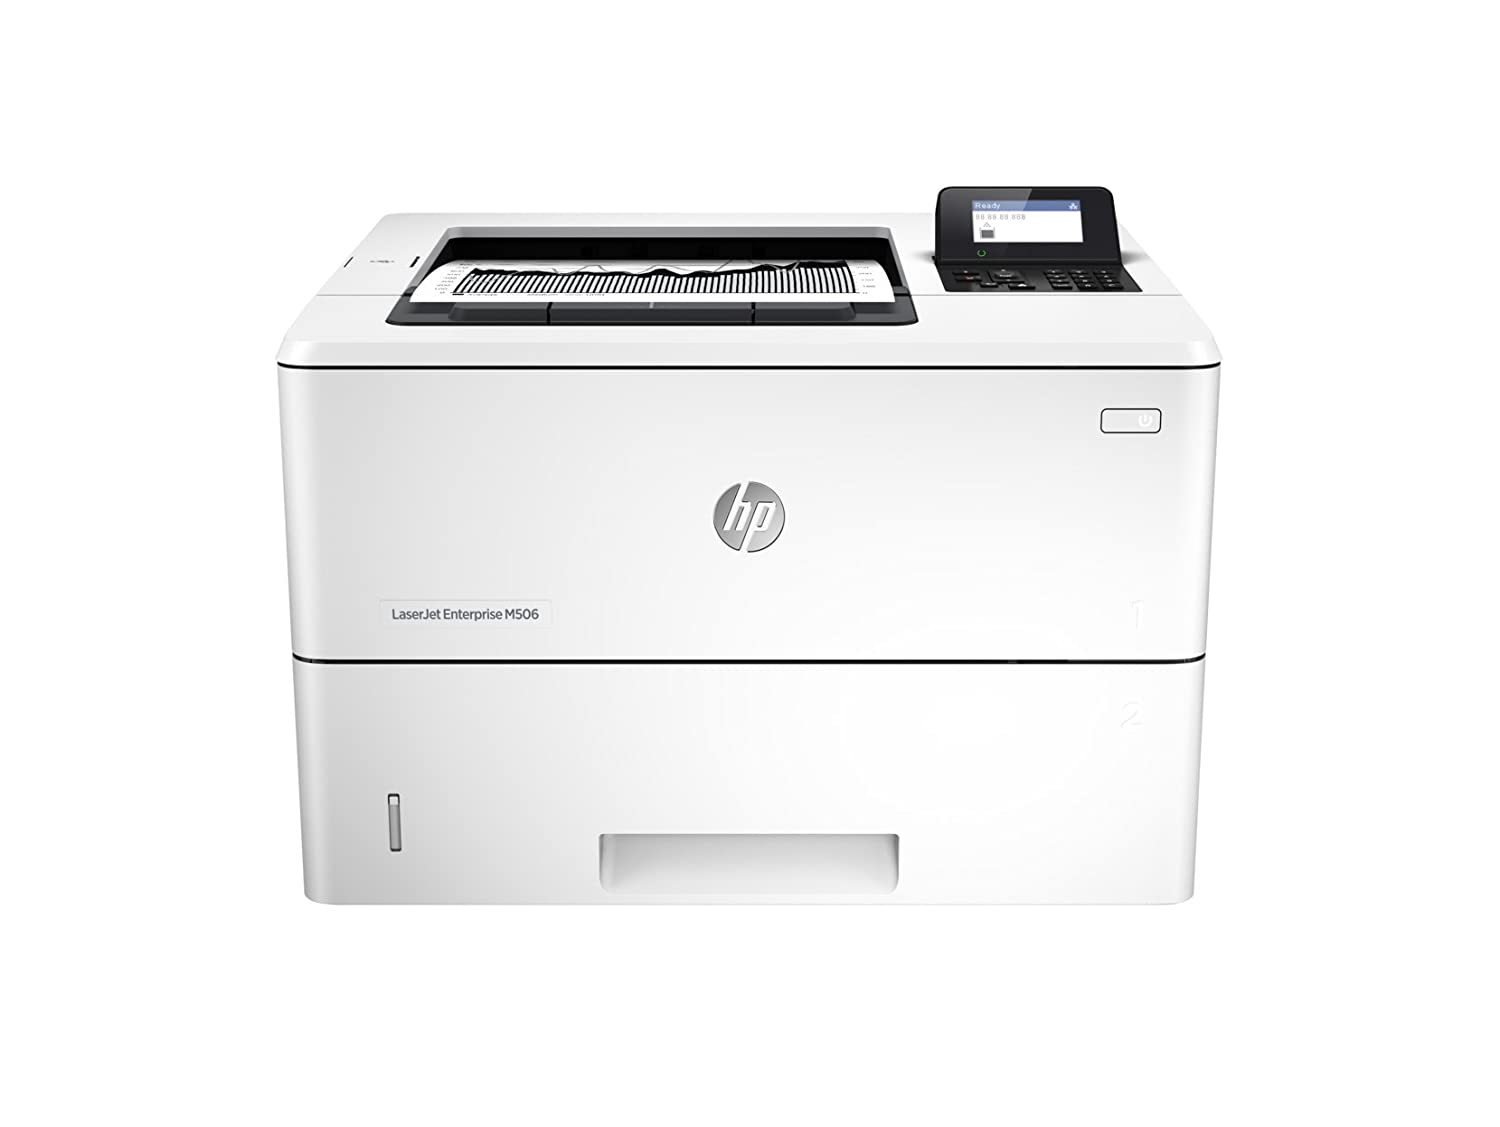 Buy Hp Laserjet Enterprise M506dn Online At Low Prices In Comutronics Electronics Qa India Reviews Ratings